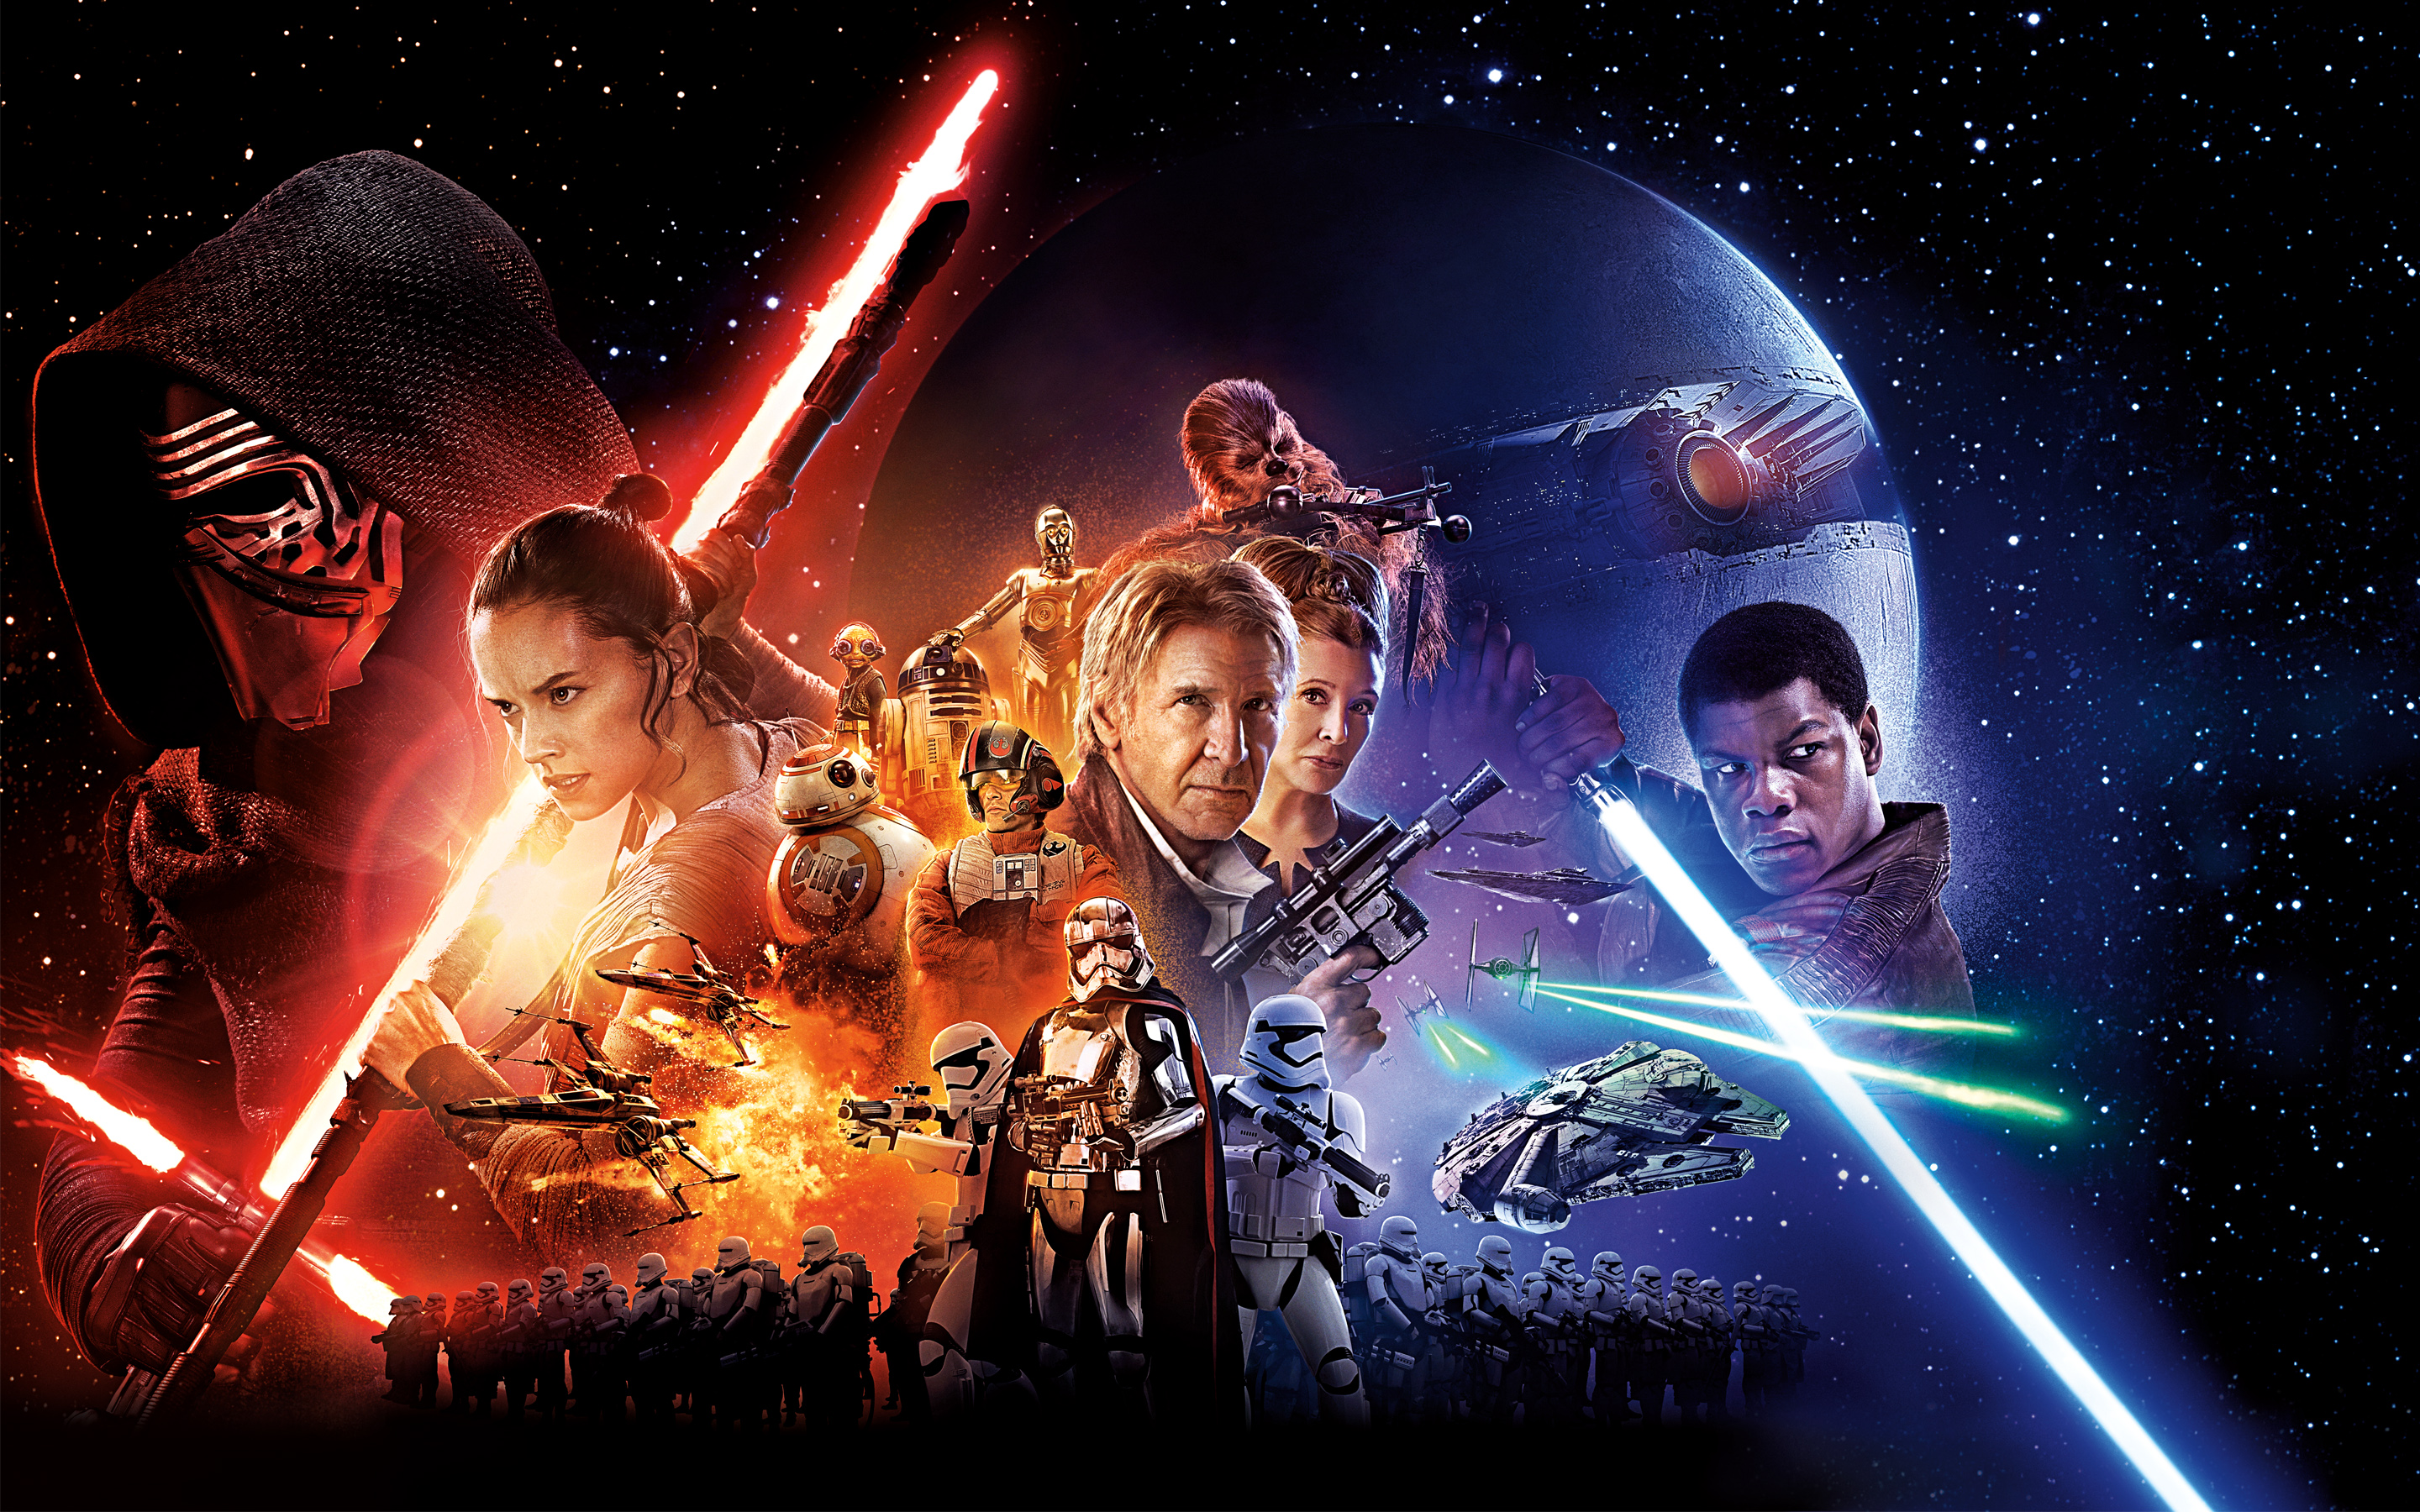 Star Wars Episode VII The Force Awakens Movie Wallpapers HD 2880x1800